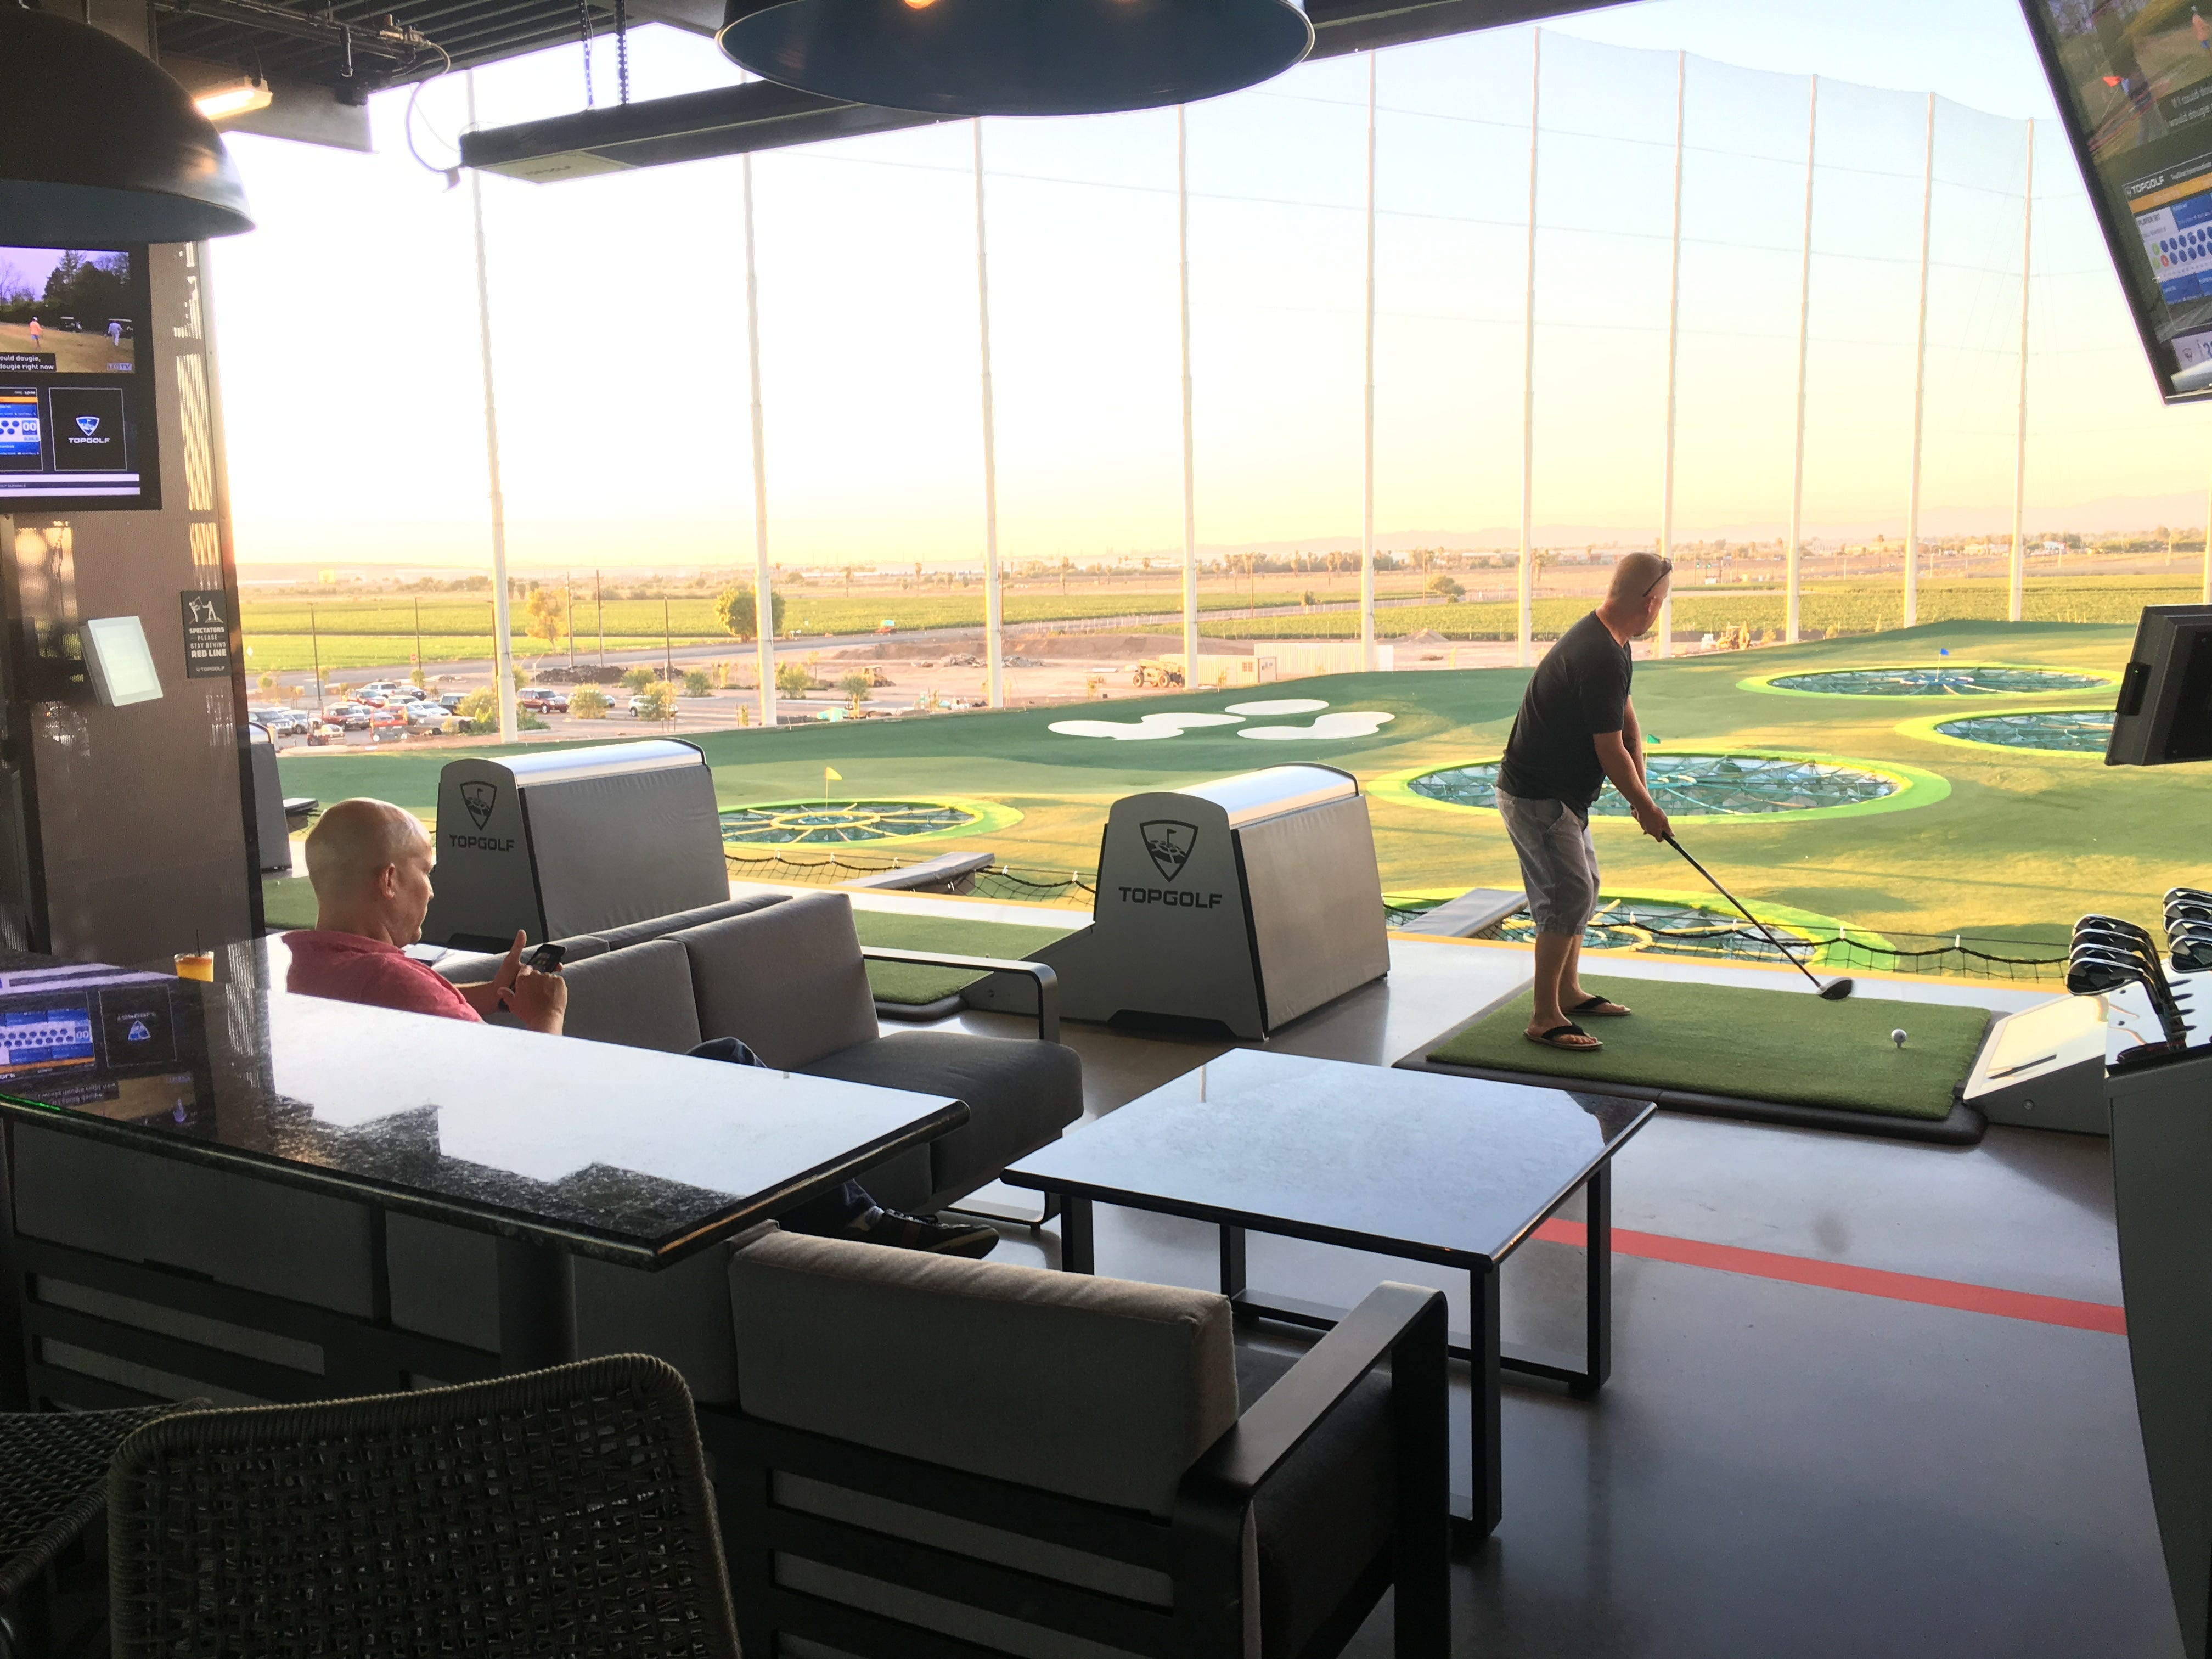 Jonathan Sawyer and Casey Stanfield attend a tour, Sept. 12, 2018, of Topgolf Glendale, the company's newest Valley location, which is scheduled to open near State Farm Stadium in September.